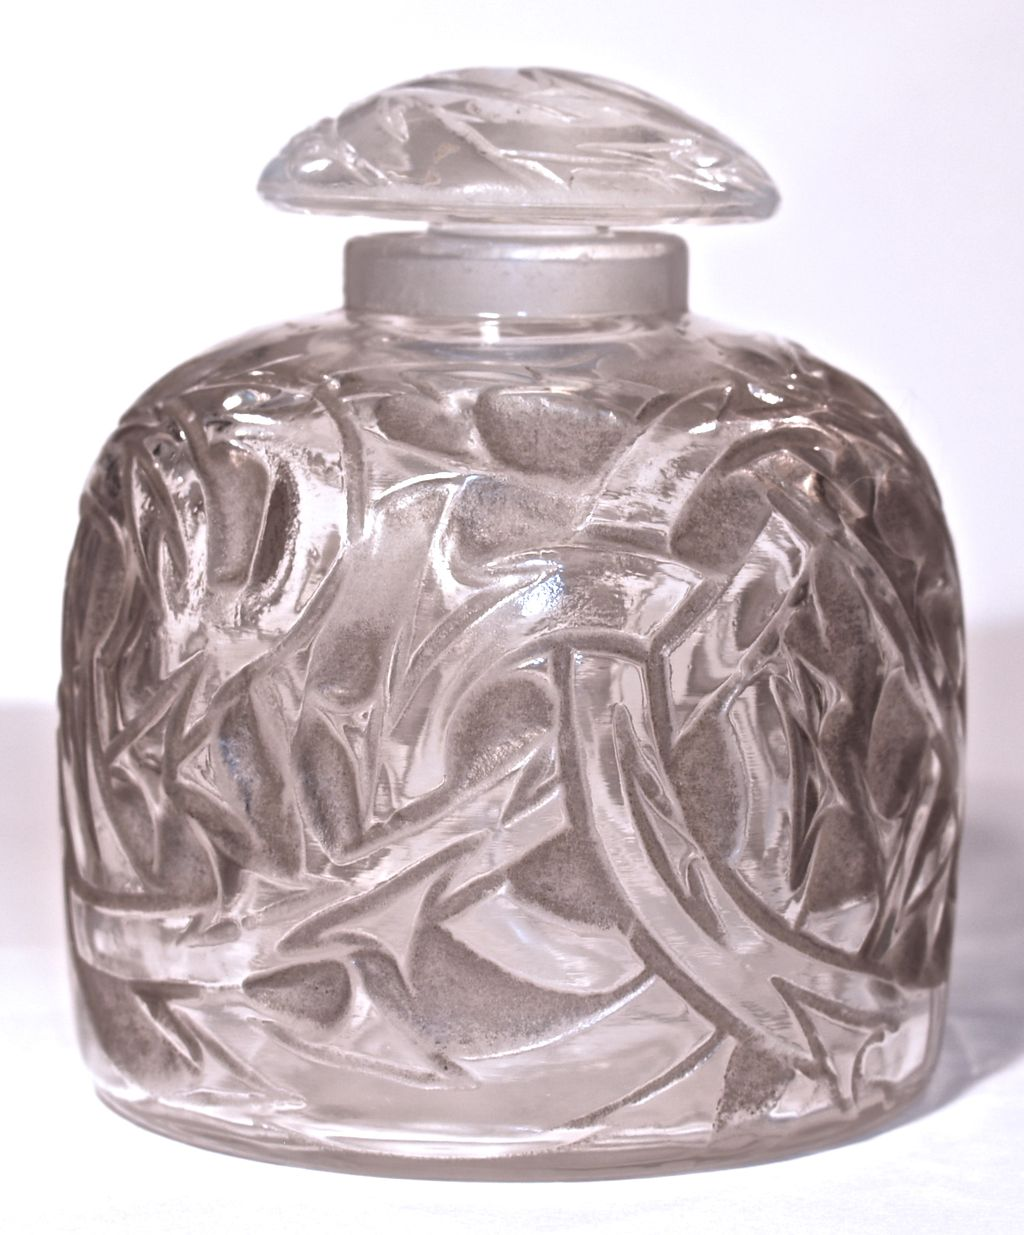 "R. LALIQUE - 1920  ""Epines"" (Thorns) Perfume/Ink Pot"